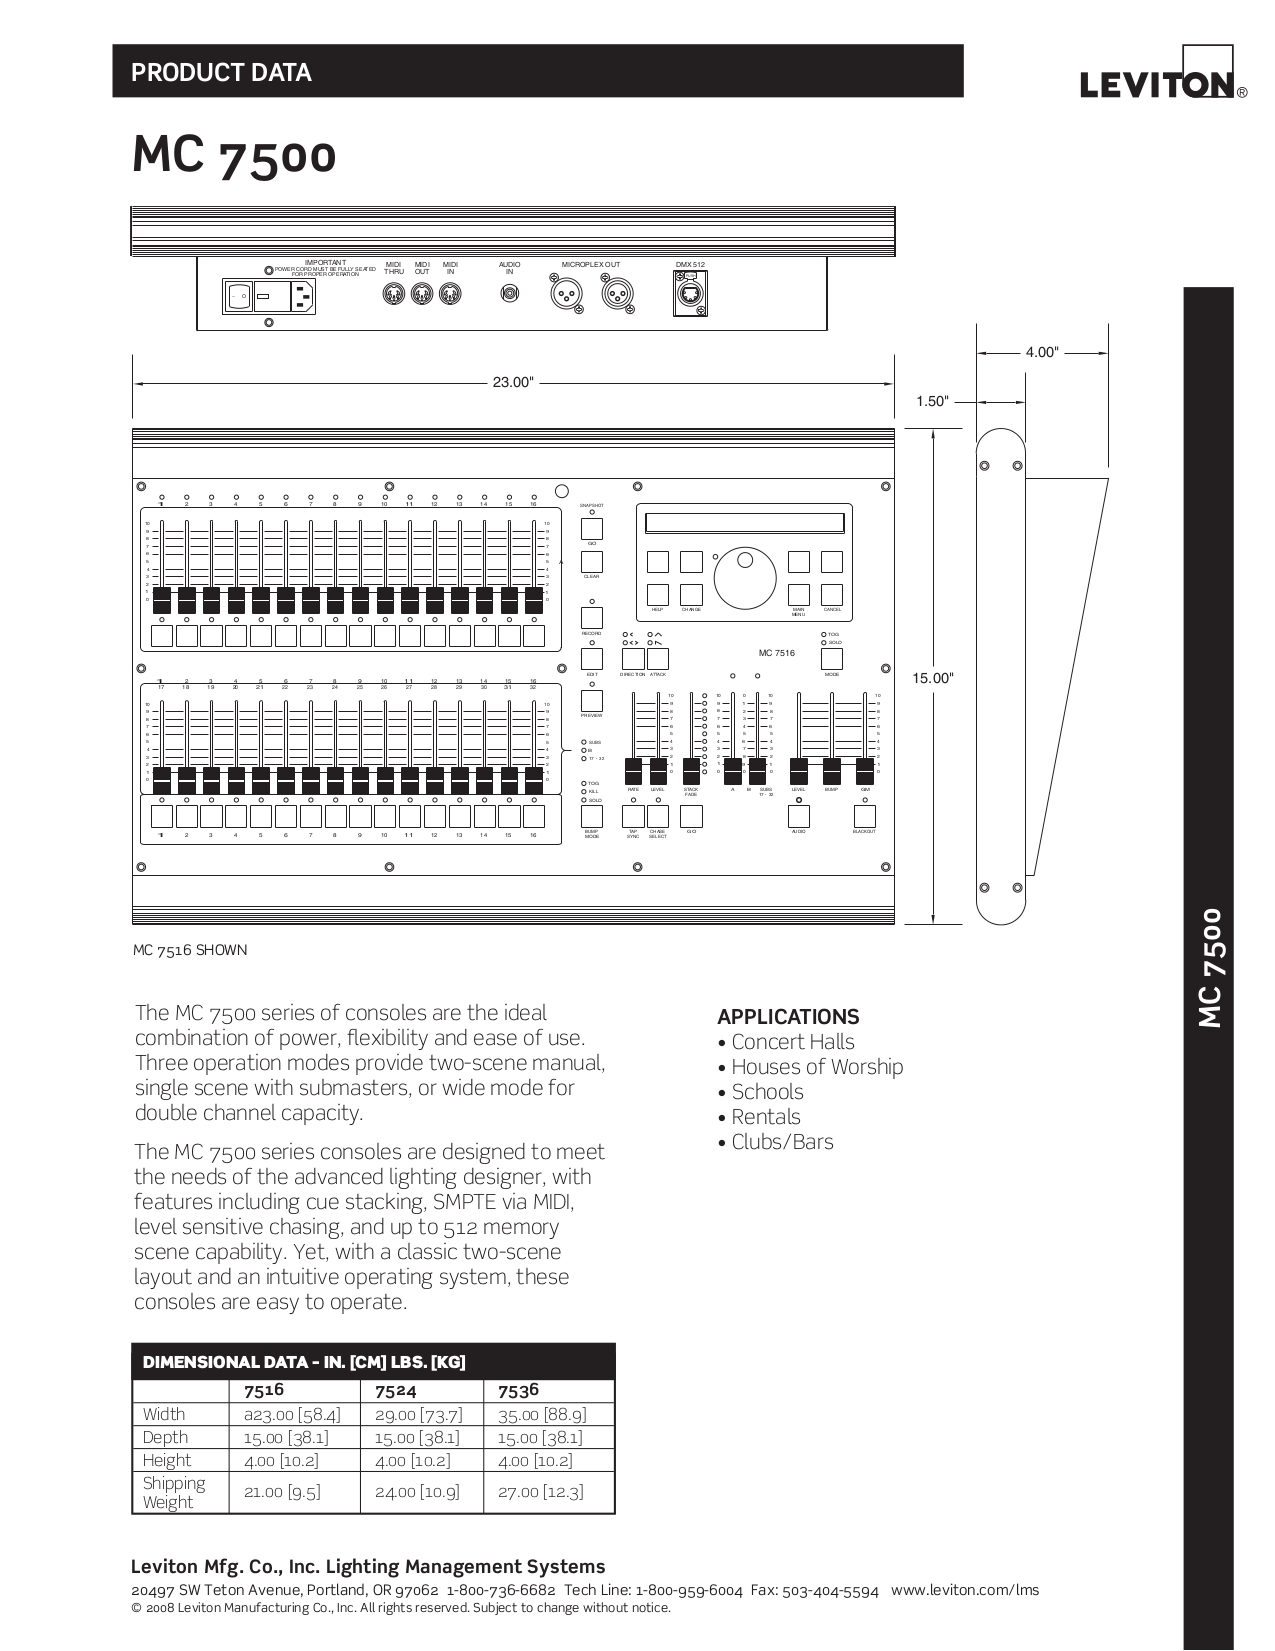 Download free pdf for Leviton MC 7500 Series MC7516 Lighting ...